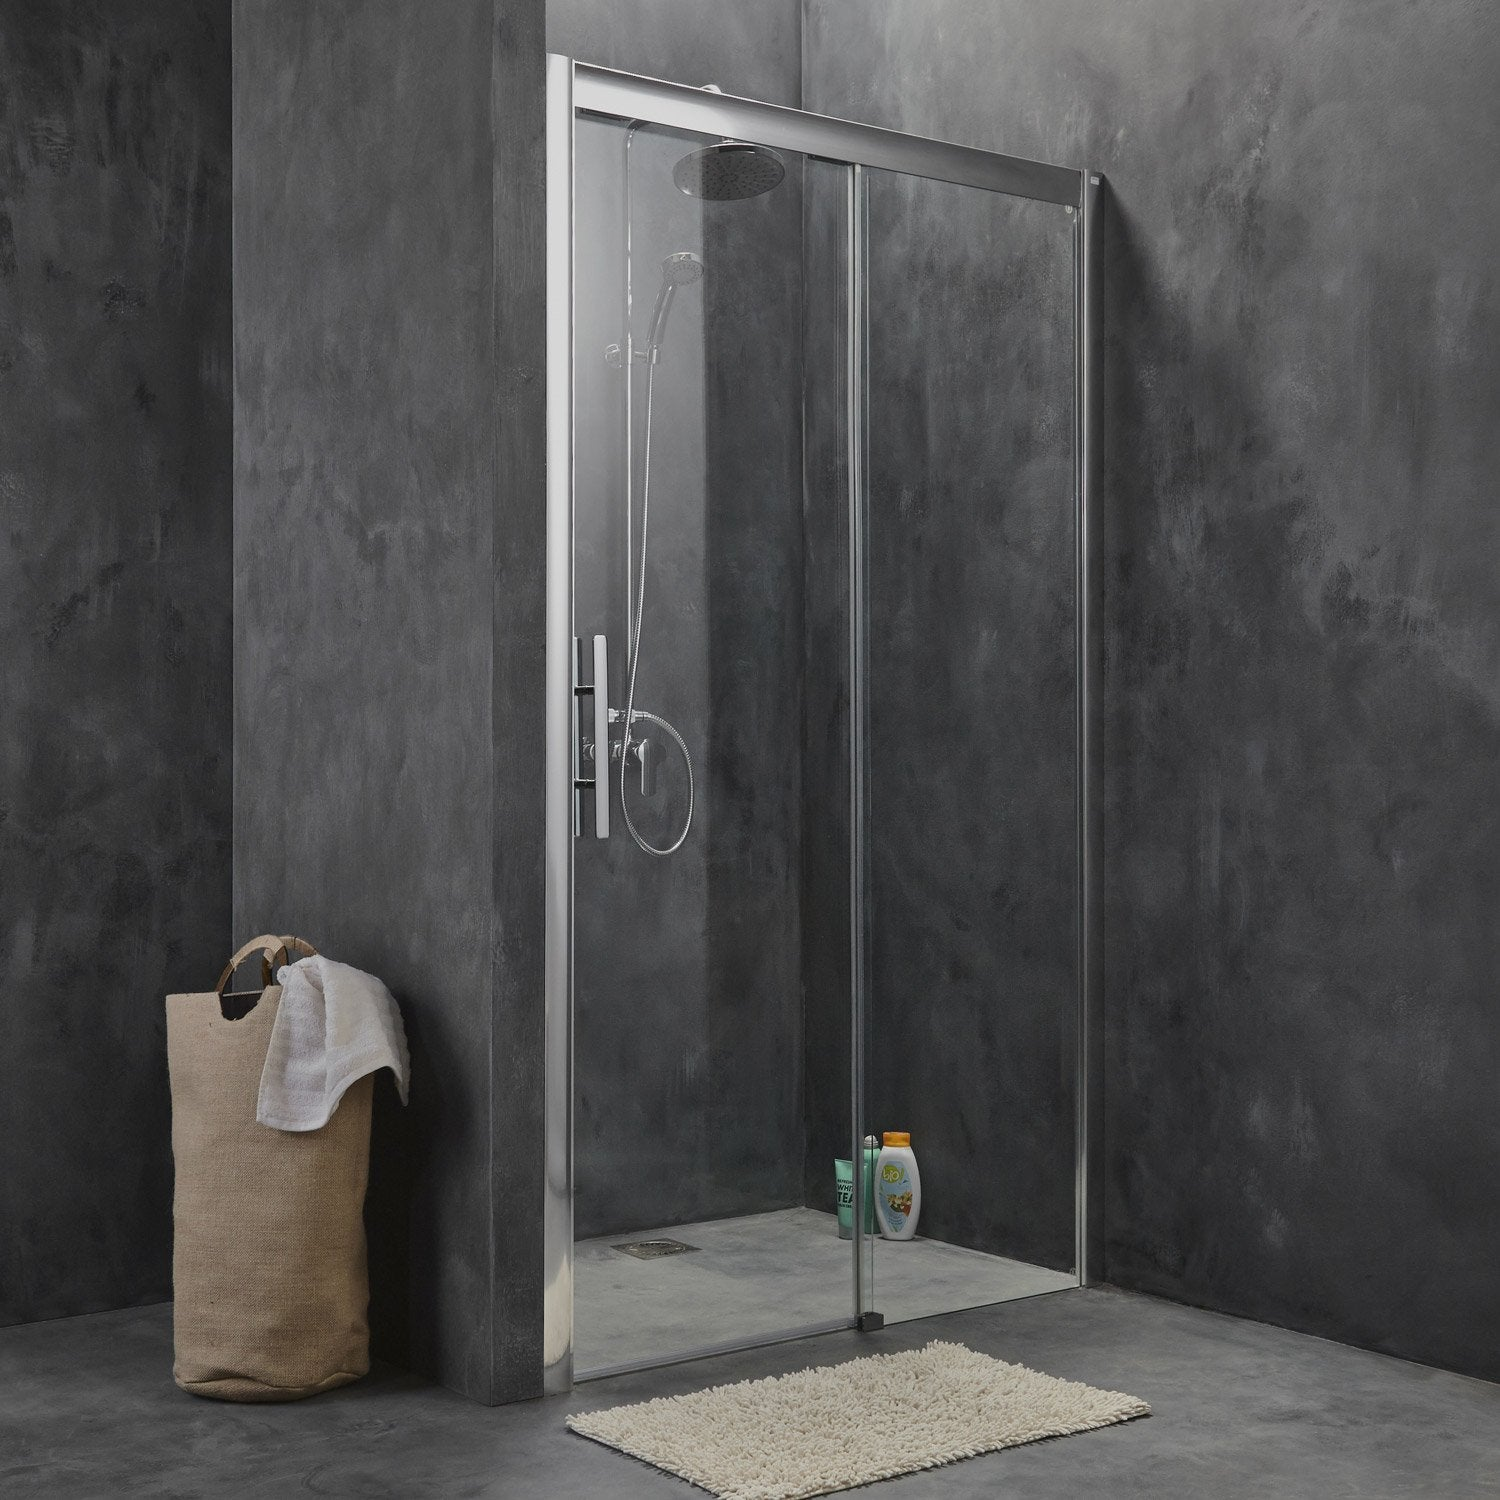 Porte de douche coulissante 140 cm transparent adena for Porte coulissante 140 cm